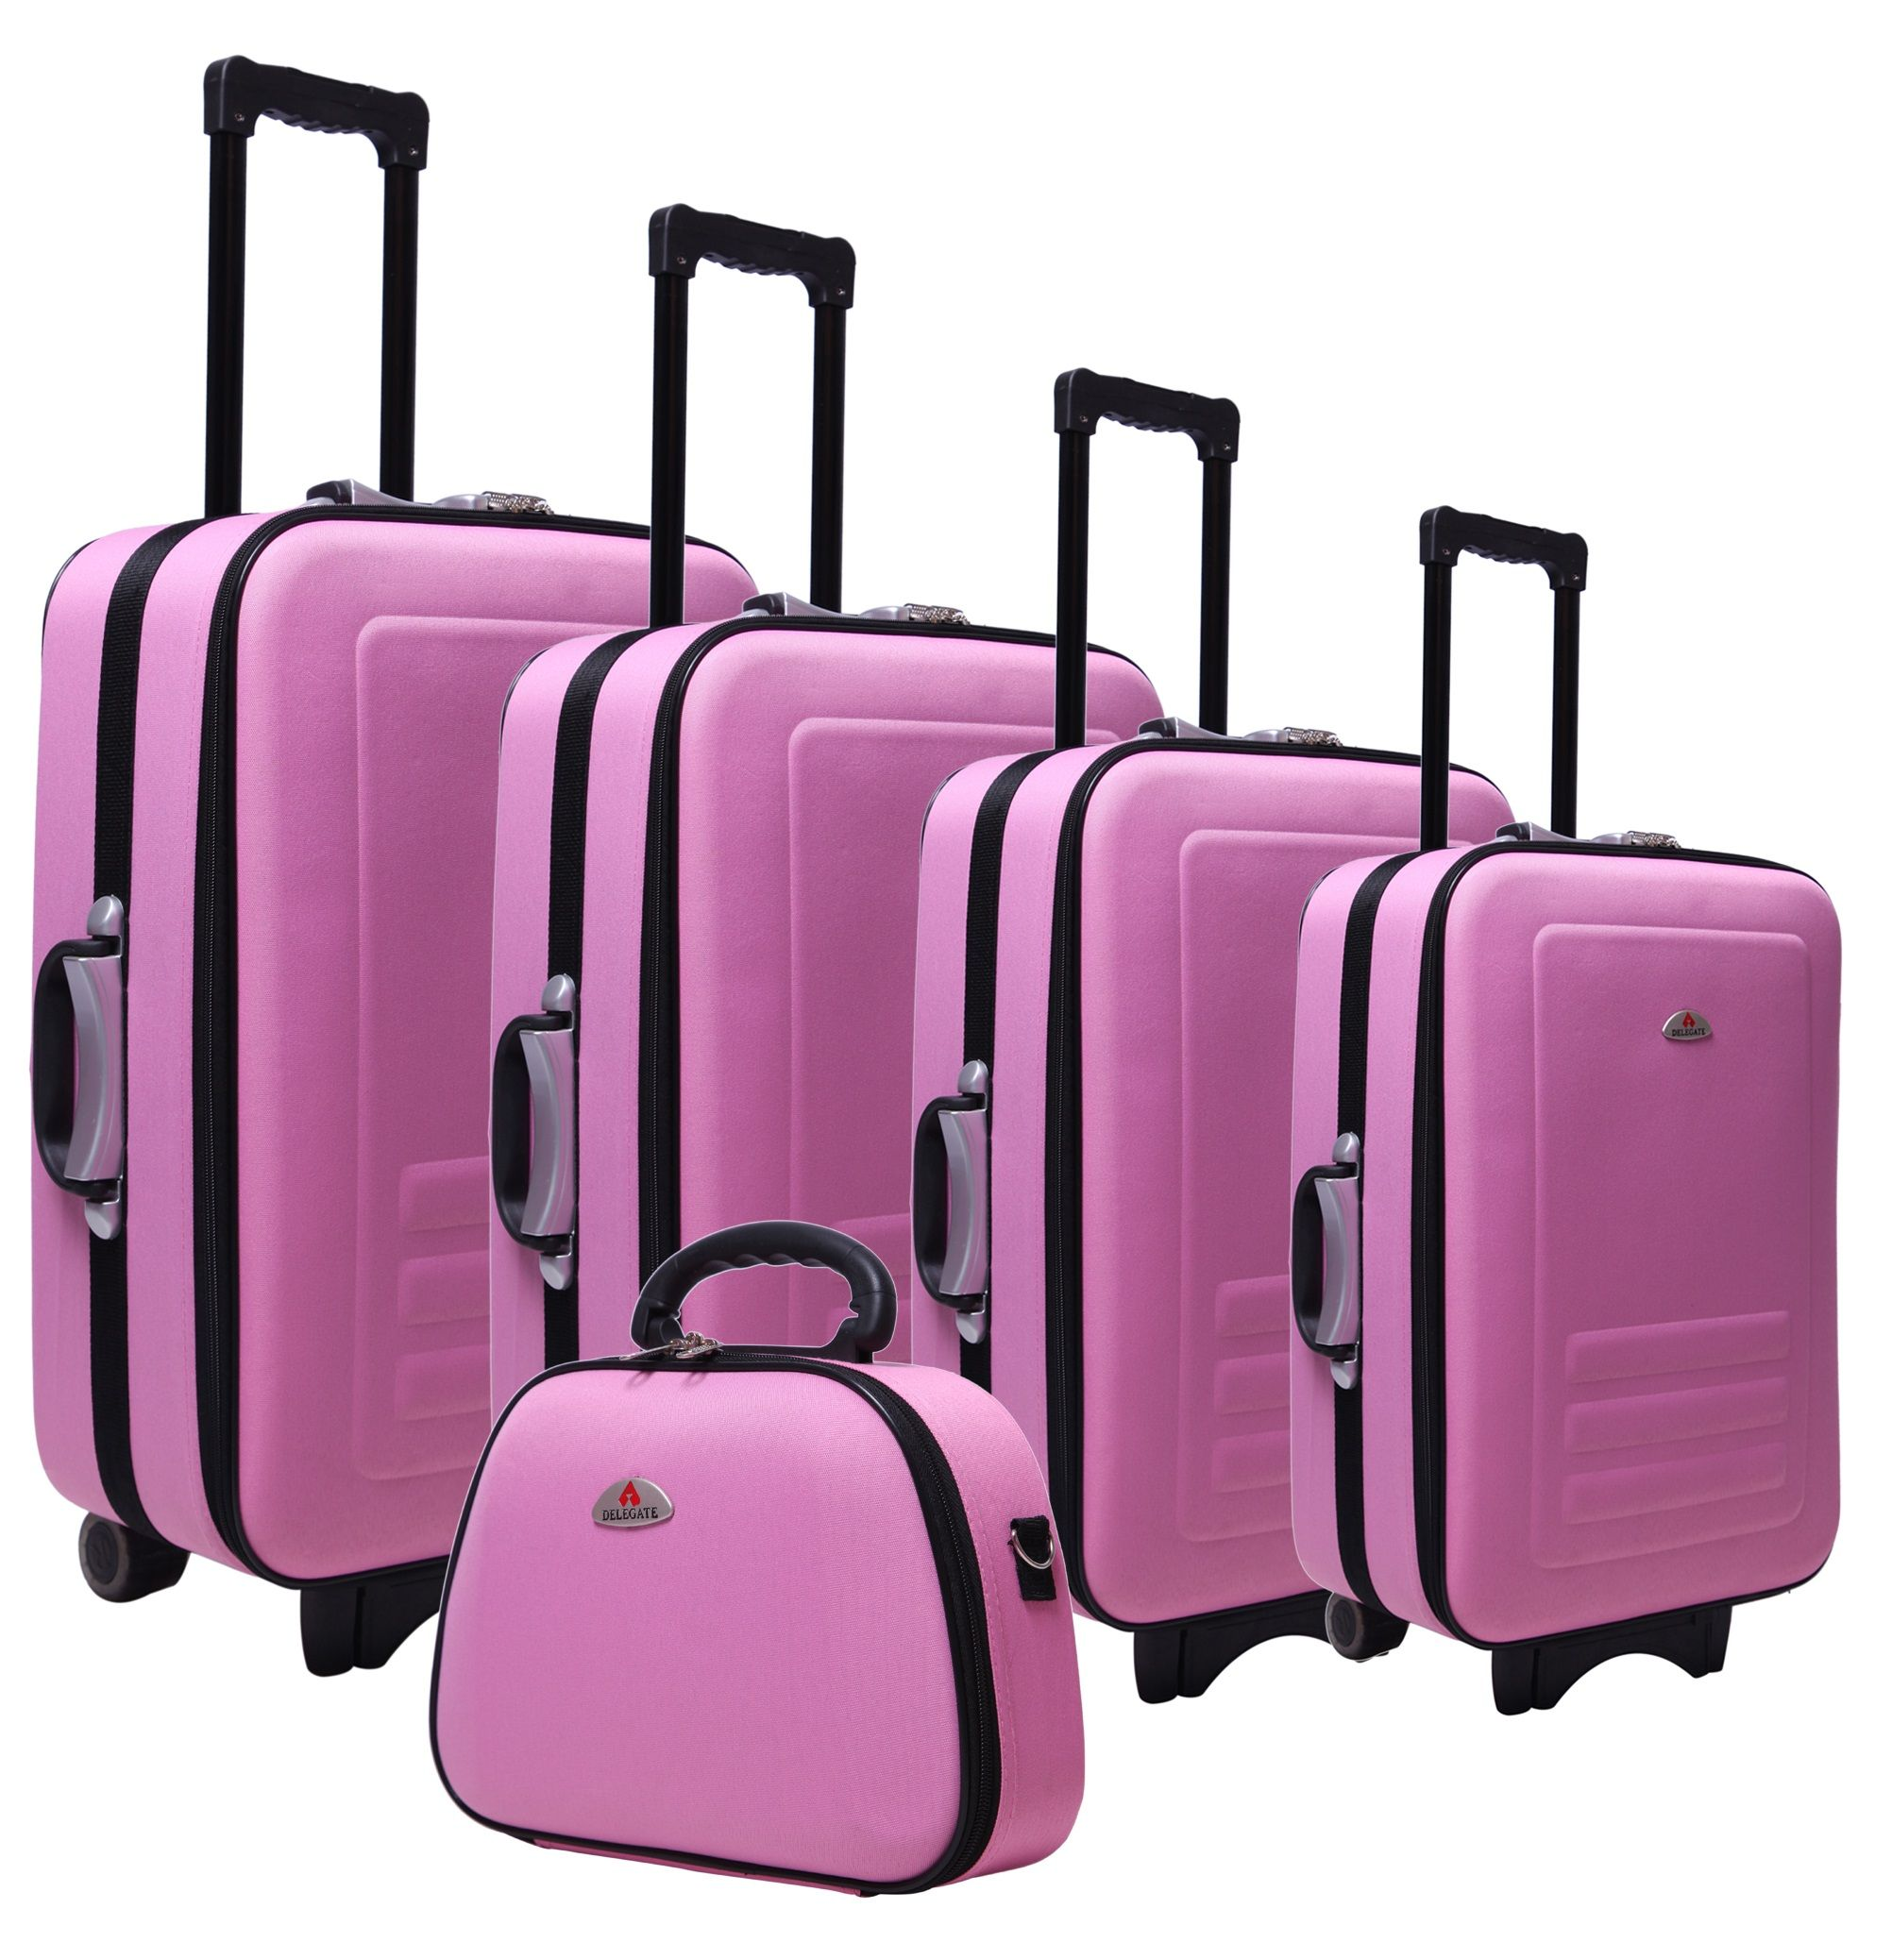 5 piece travel suitcase set - Compare travel bags and shop online ...